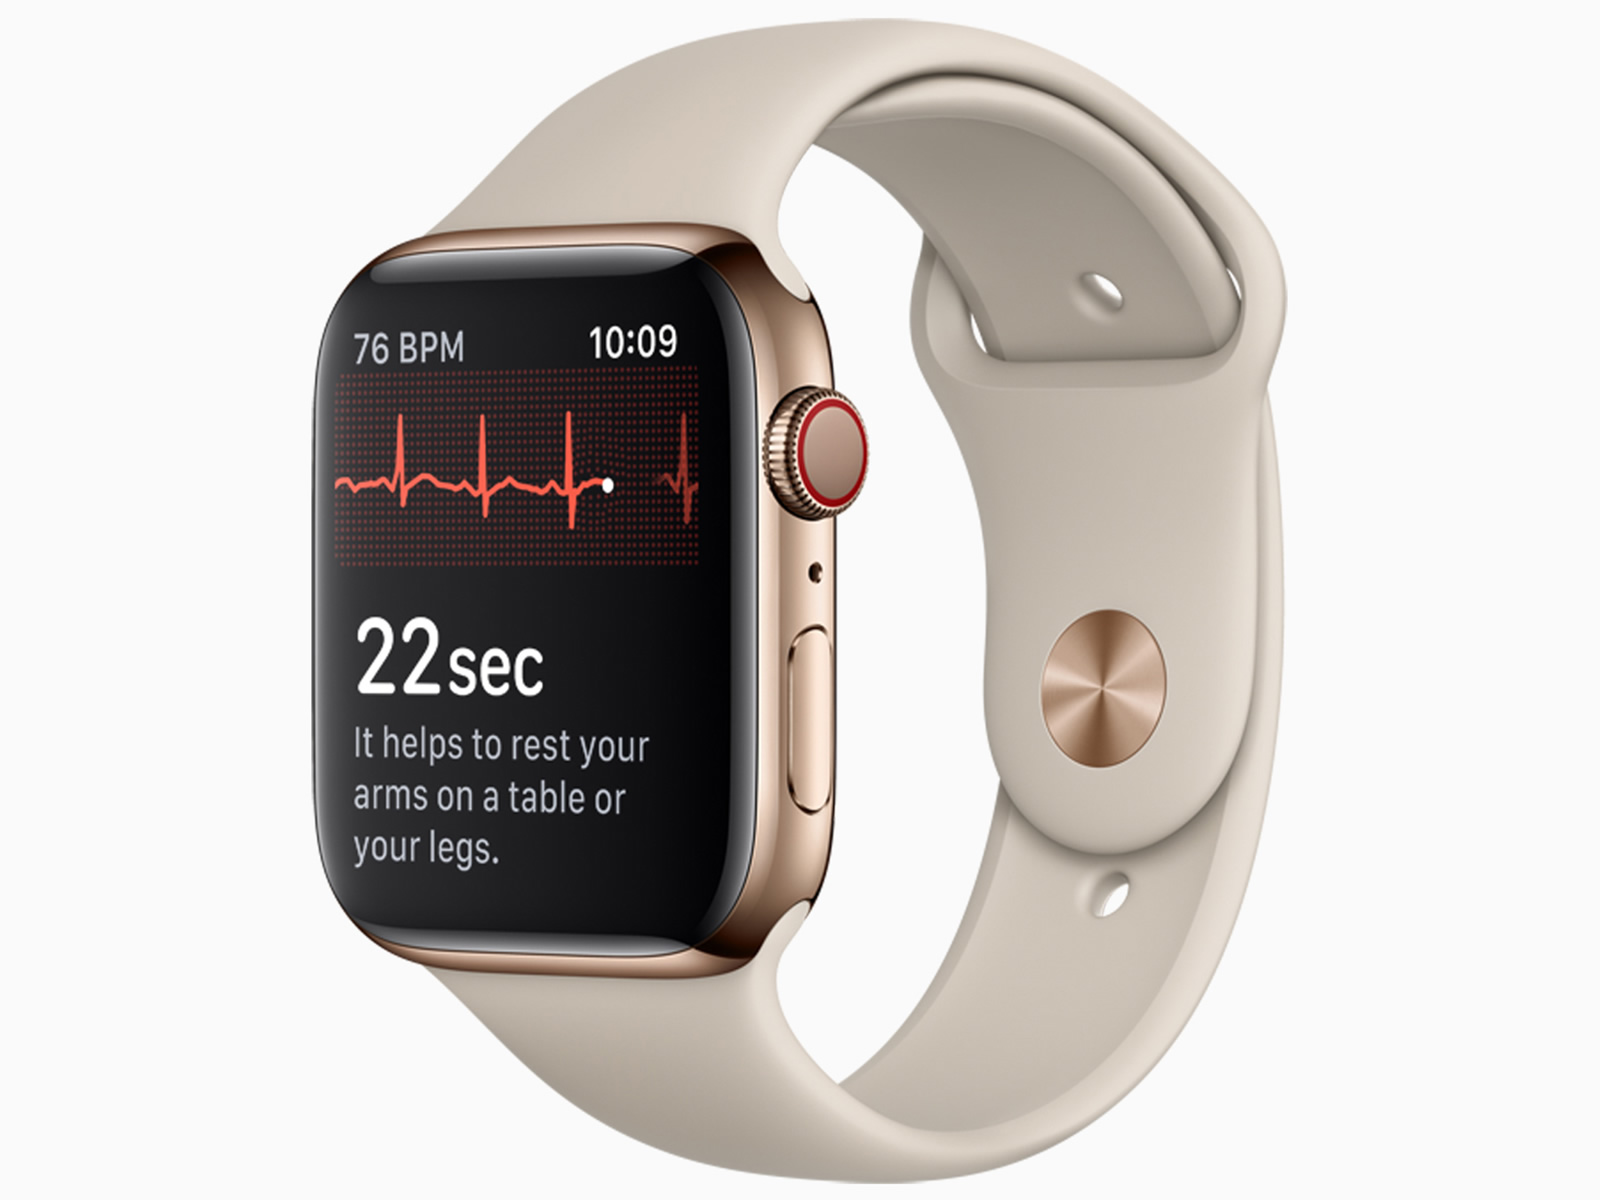 apple-watch-series-4-7-.jpg